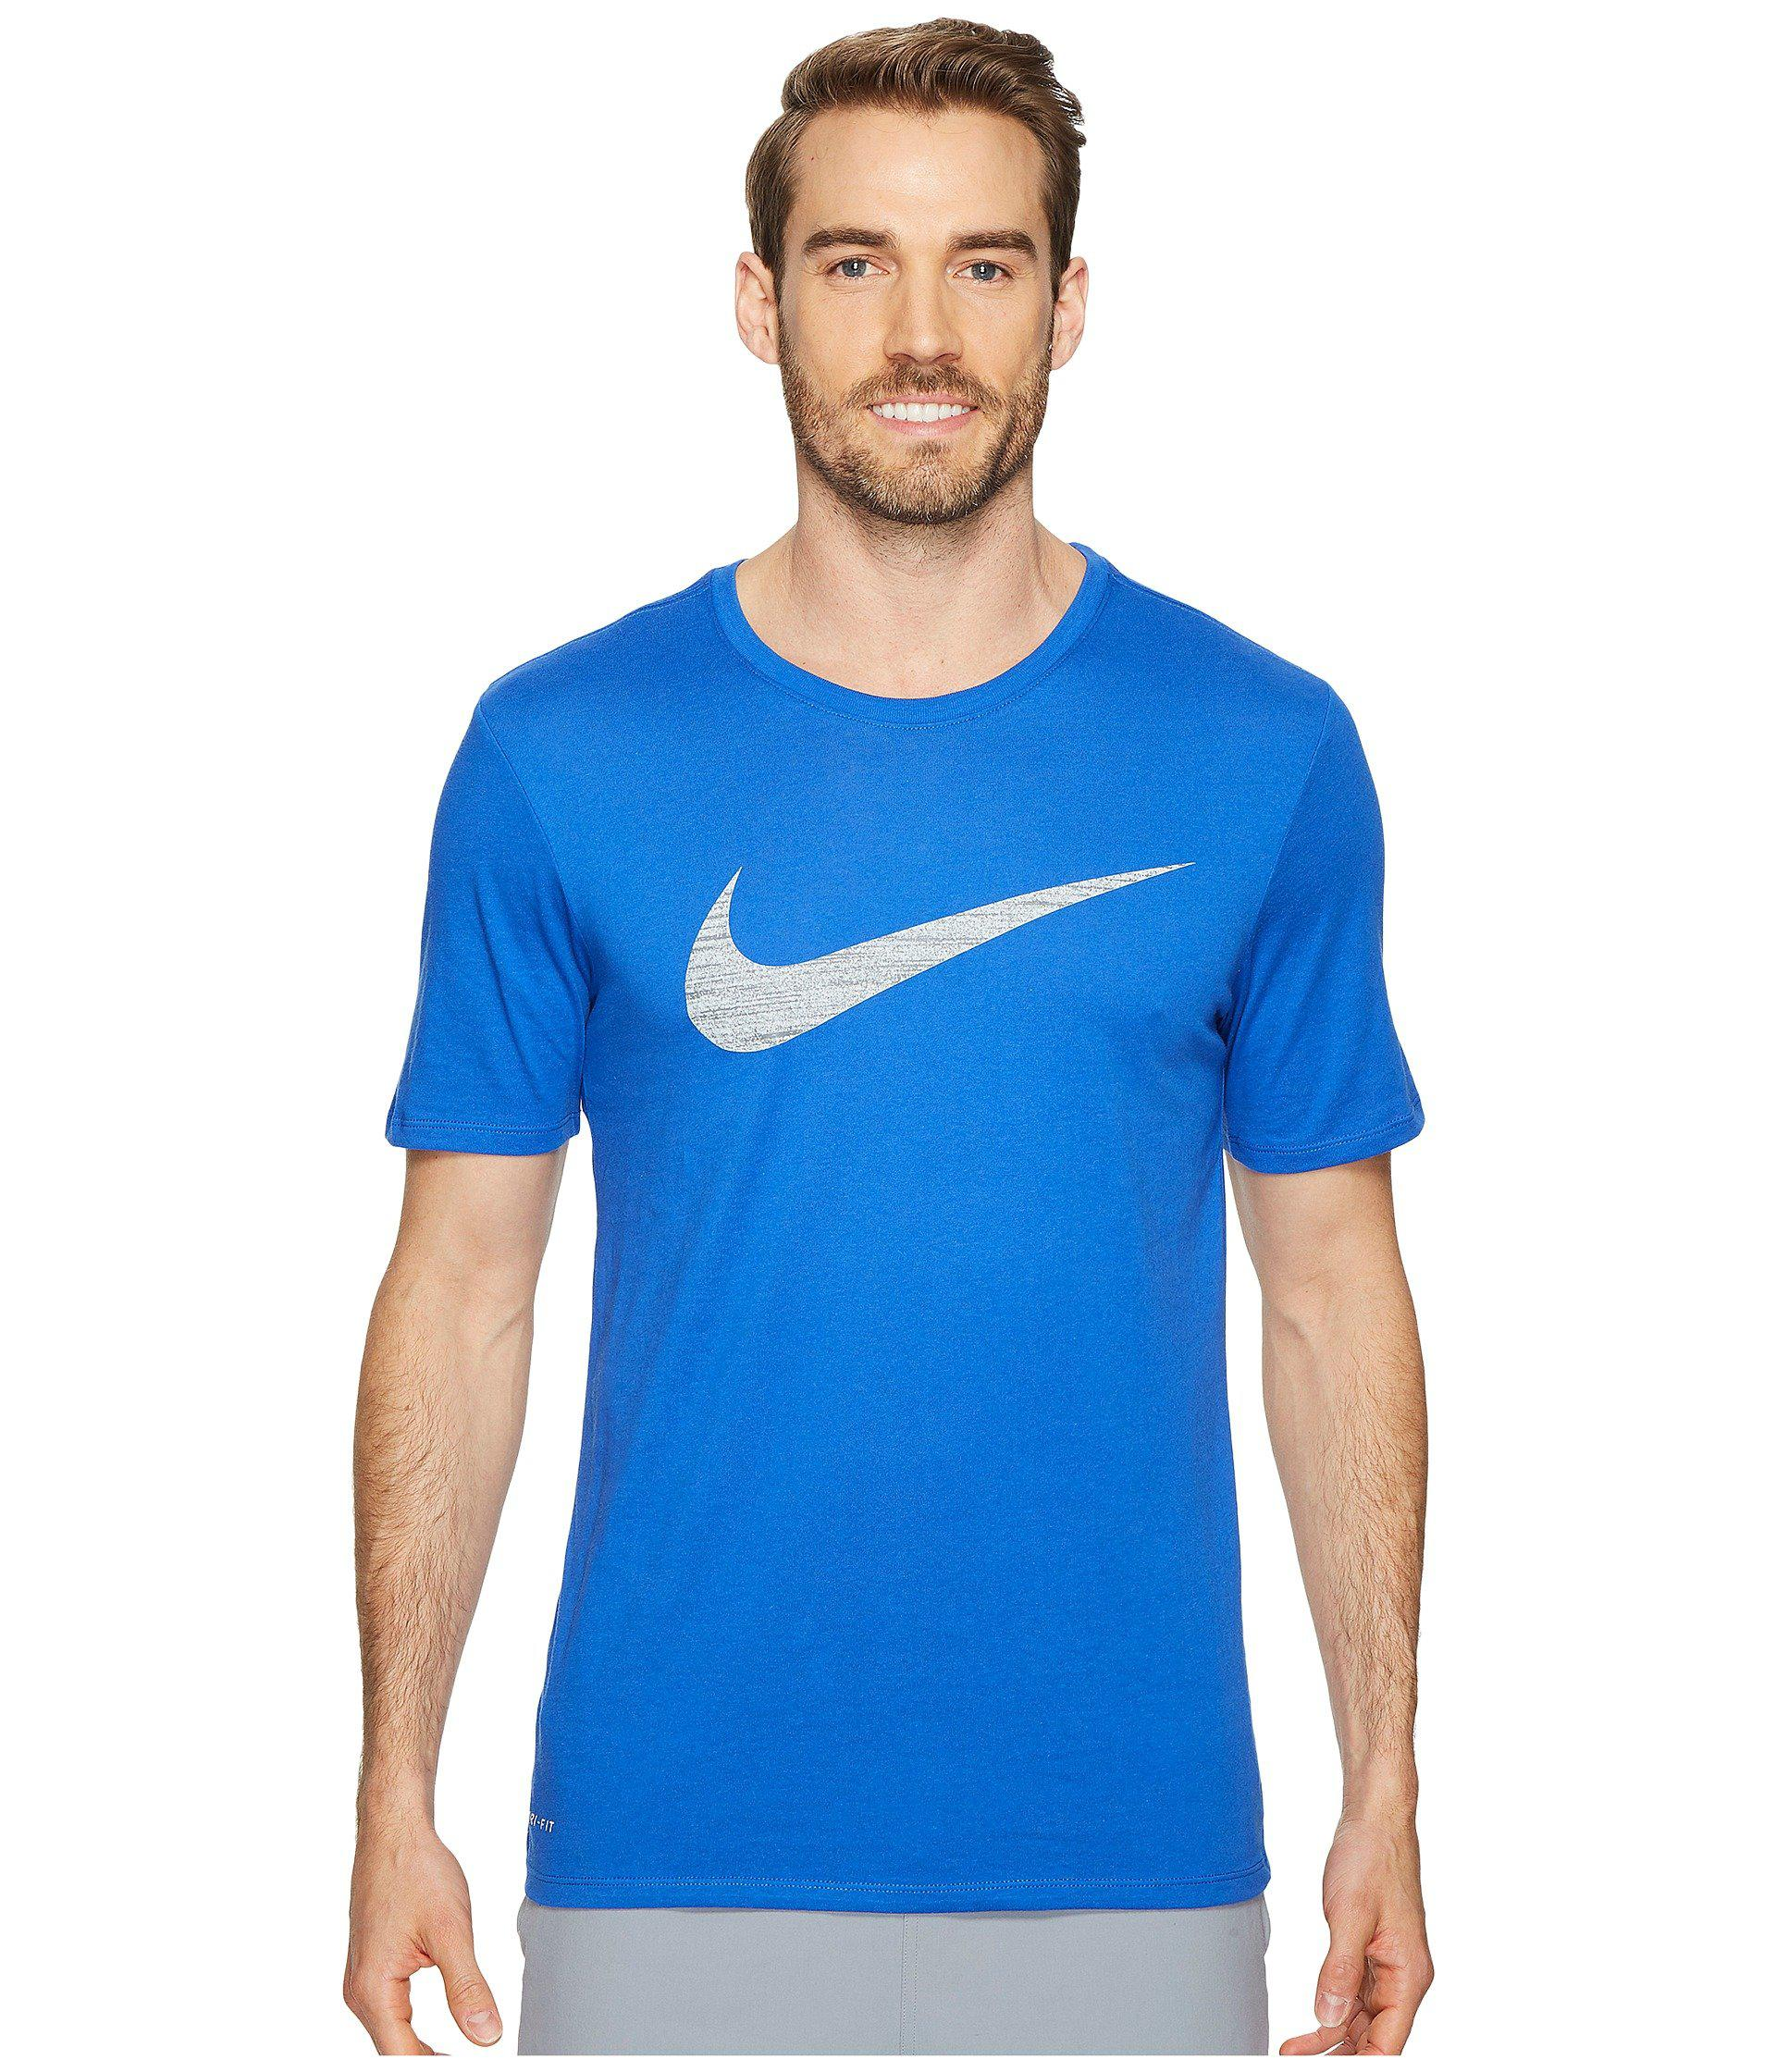 5bf28dded Lyst - Nike Dry Swoosh Training T-shirt in Blue for Men